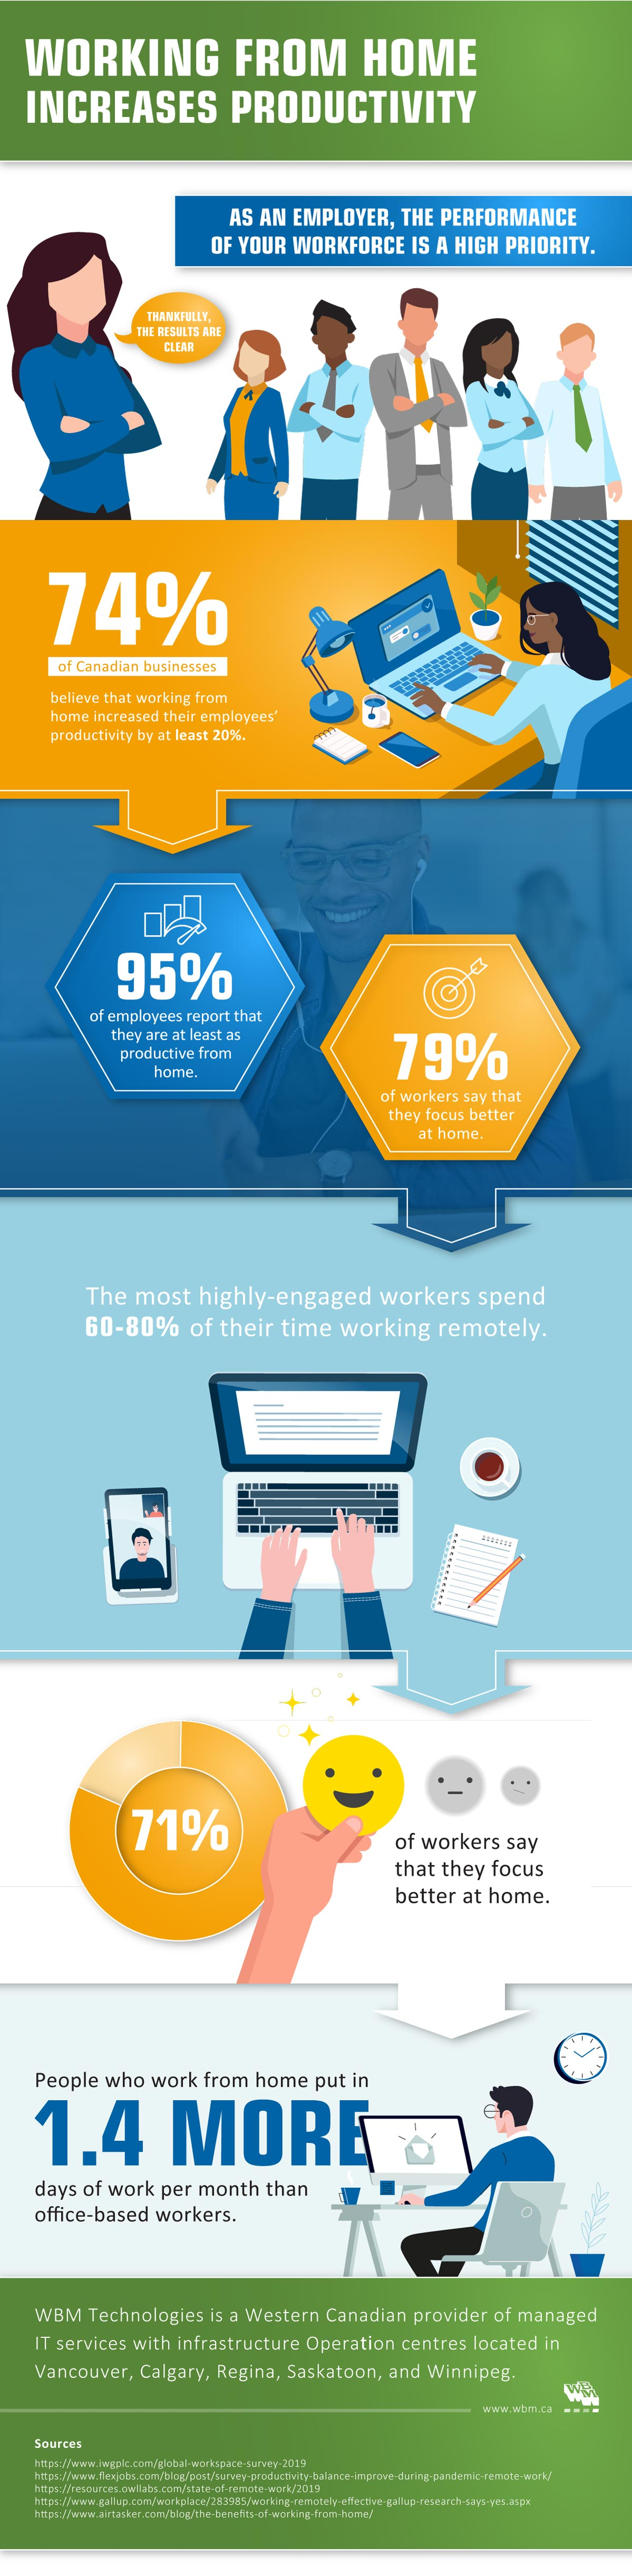 Working from Home Increases Productivity – Infographic